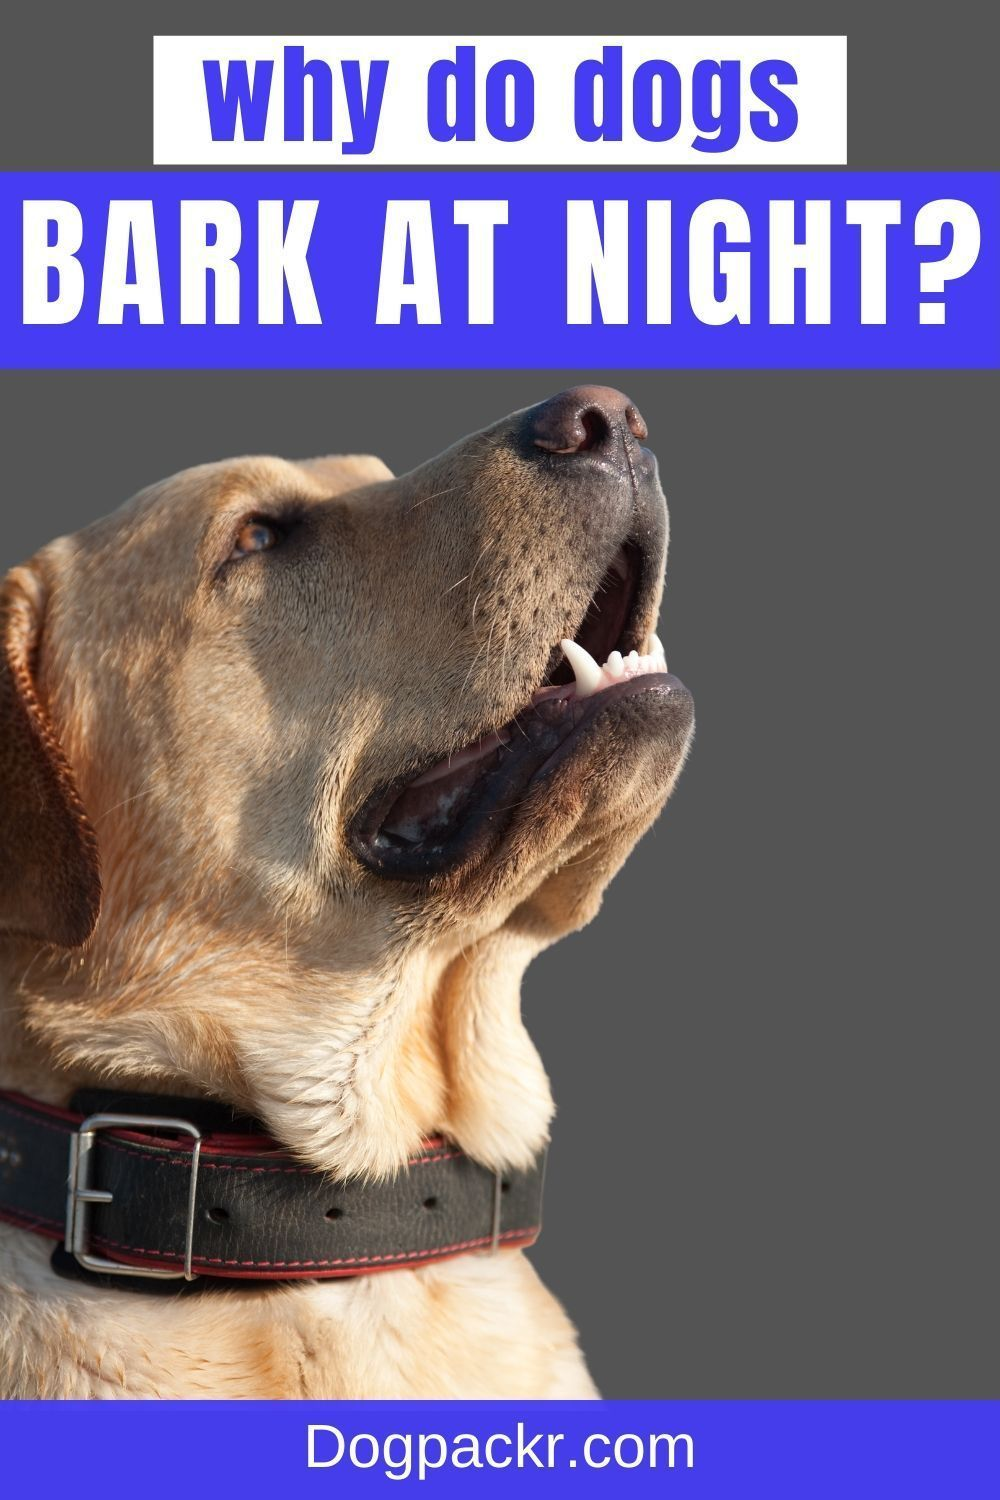 Why Do Dogs Bark At Night Mystery Resolved Dogpackr In 2021 Dog Barking At Night Dog Barking Dogs